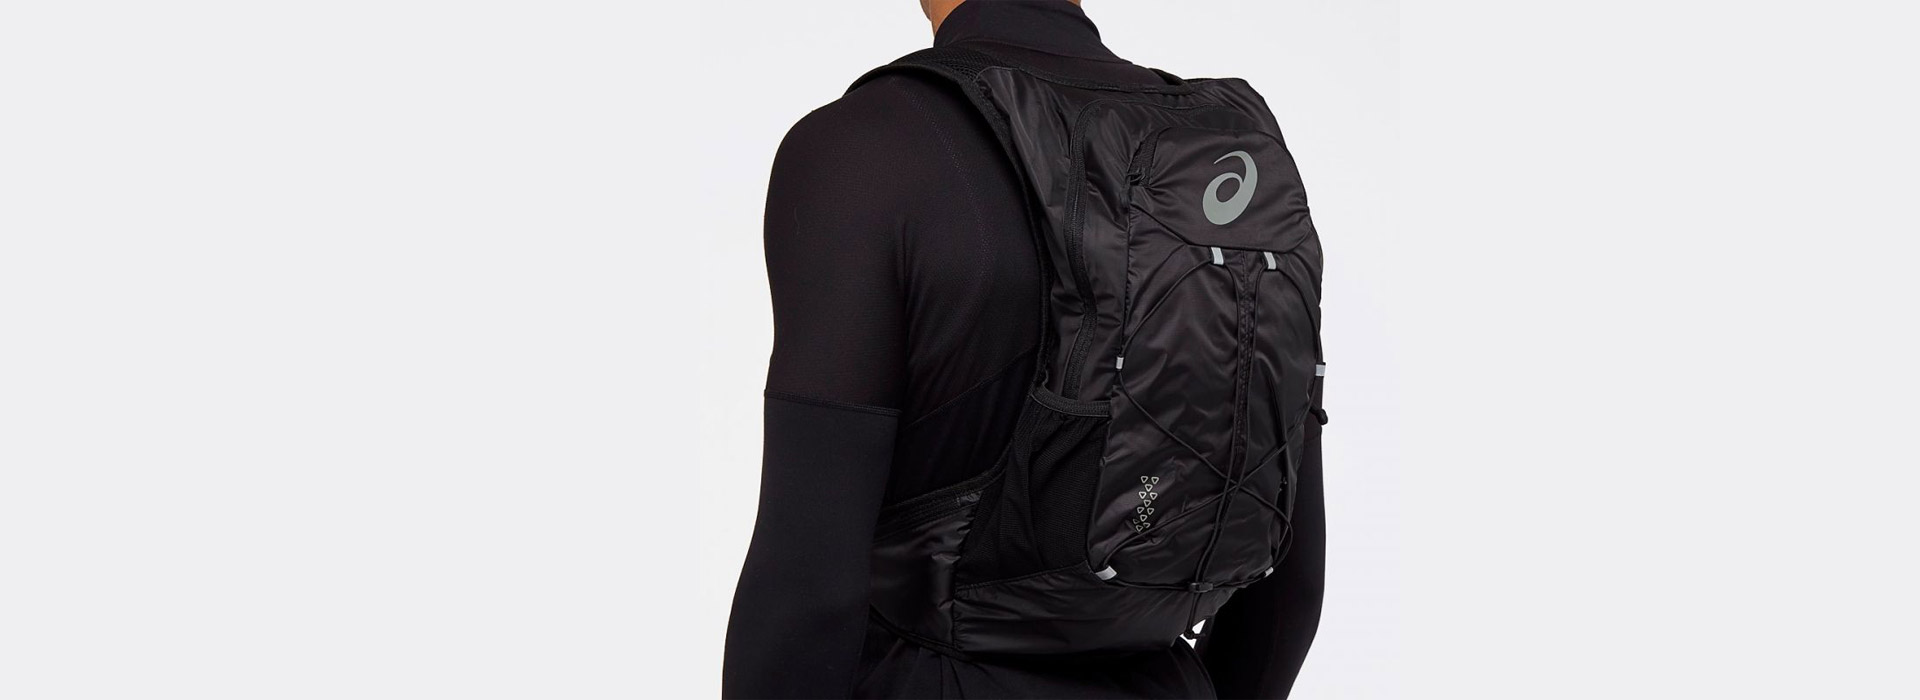 Рюкзак для бега ASICS Lightweight Running Backpack